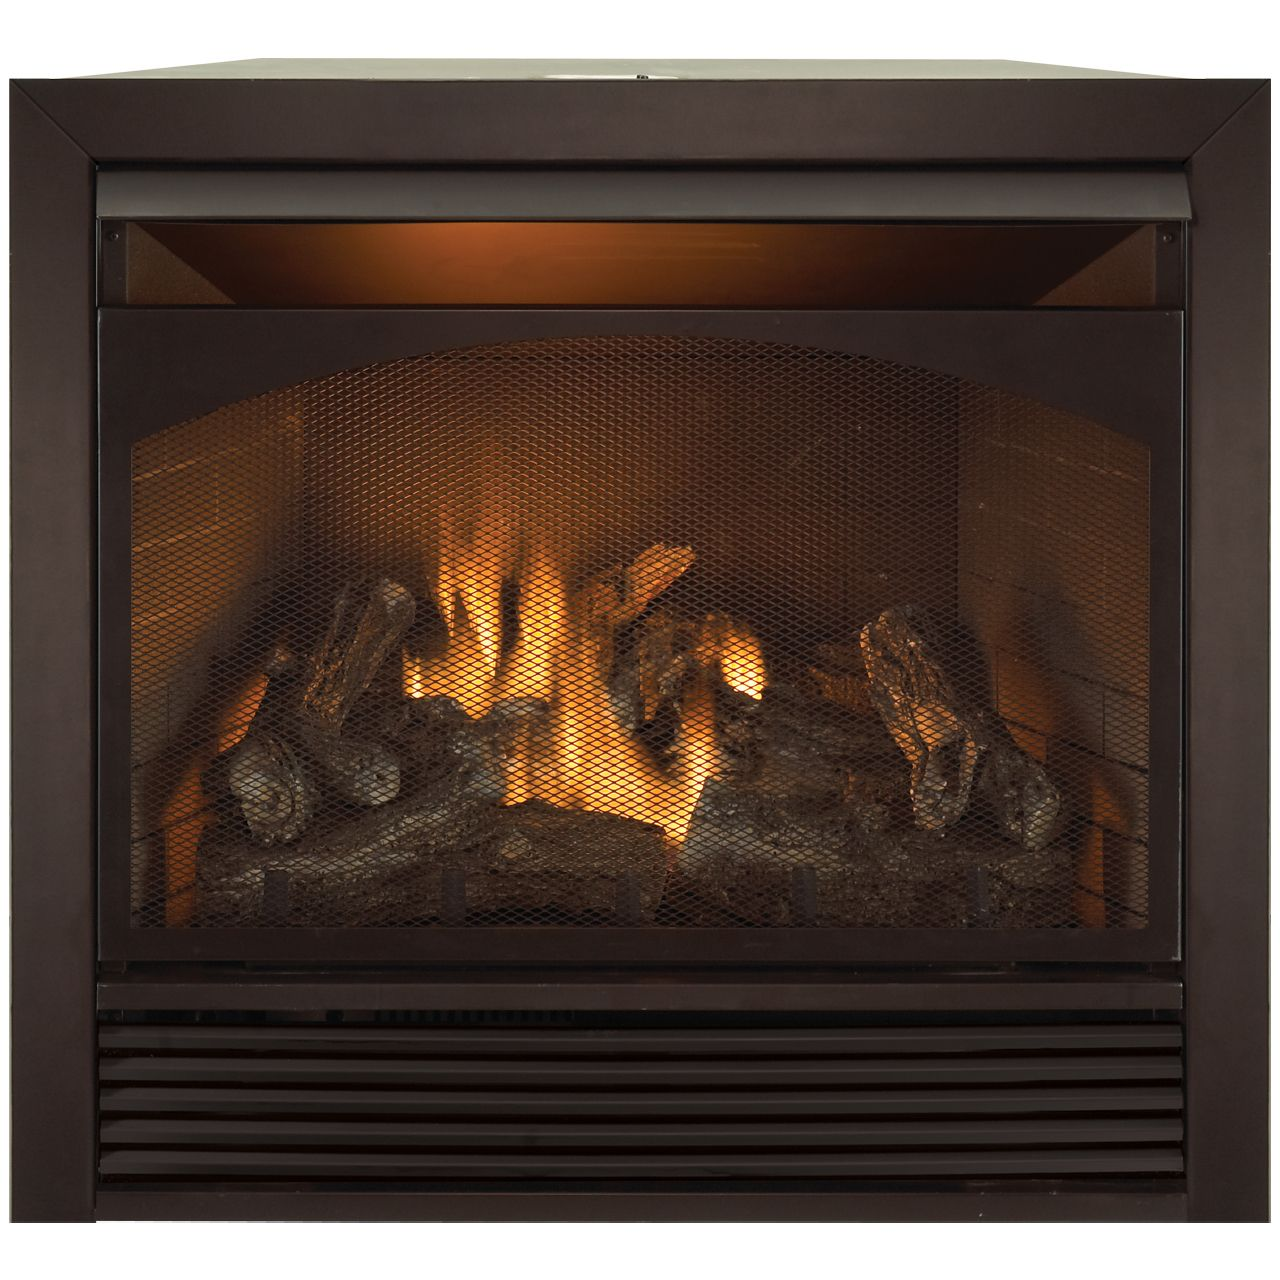 Wholesale Fireplace Inserts Duluth Forge Dual Fuel Ventless Fireplace Insert 32 000 Btu